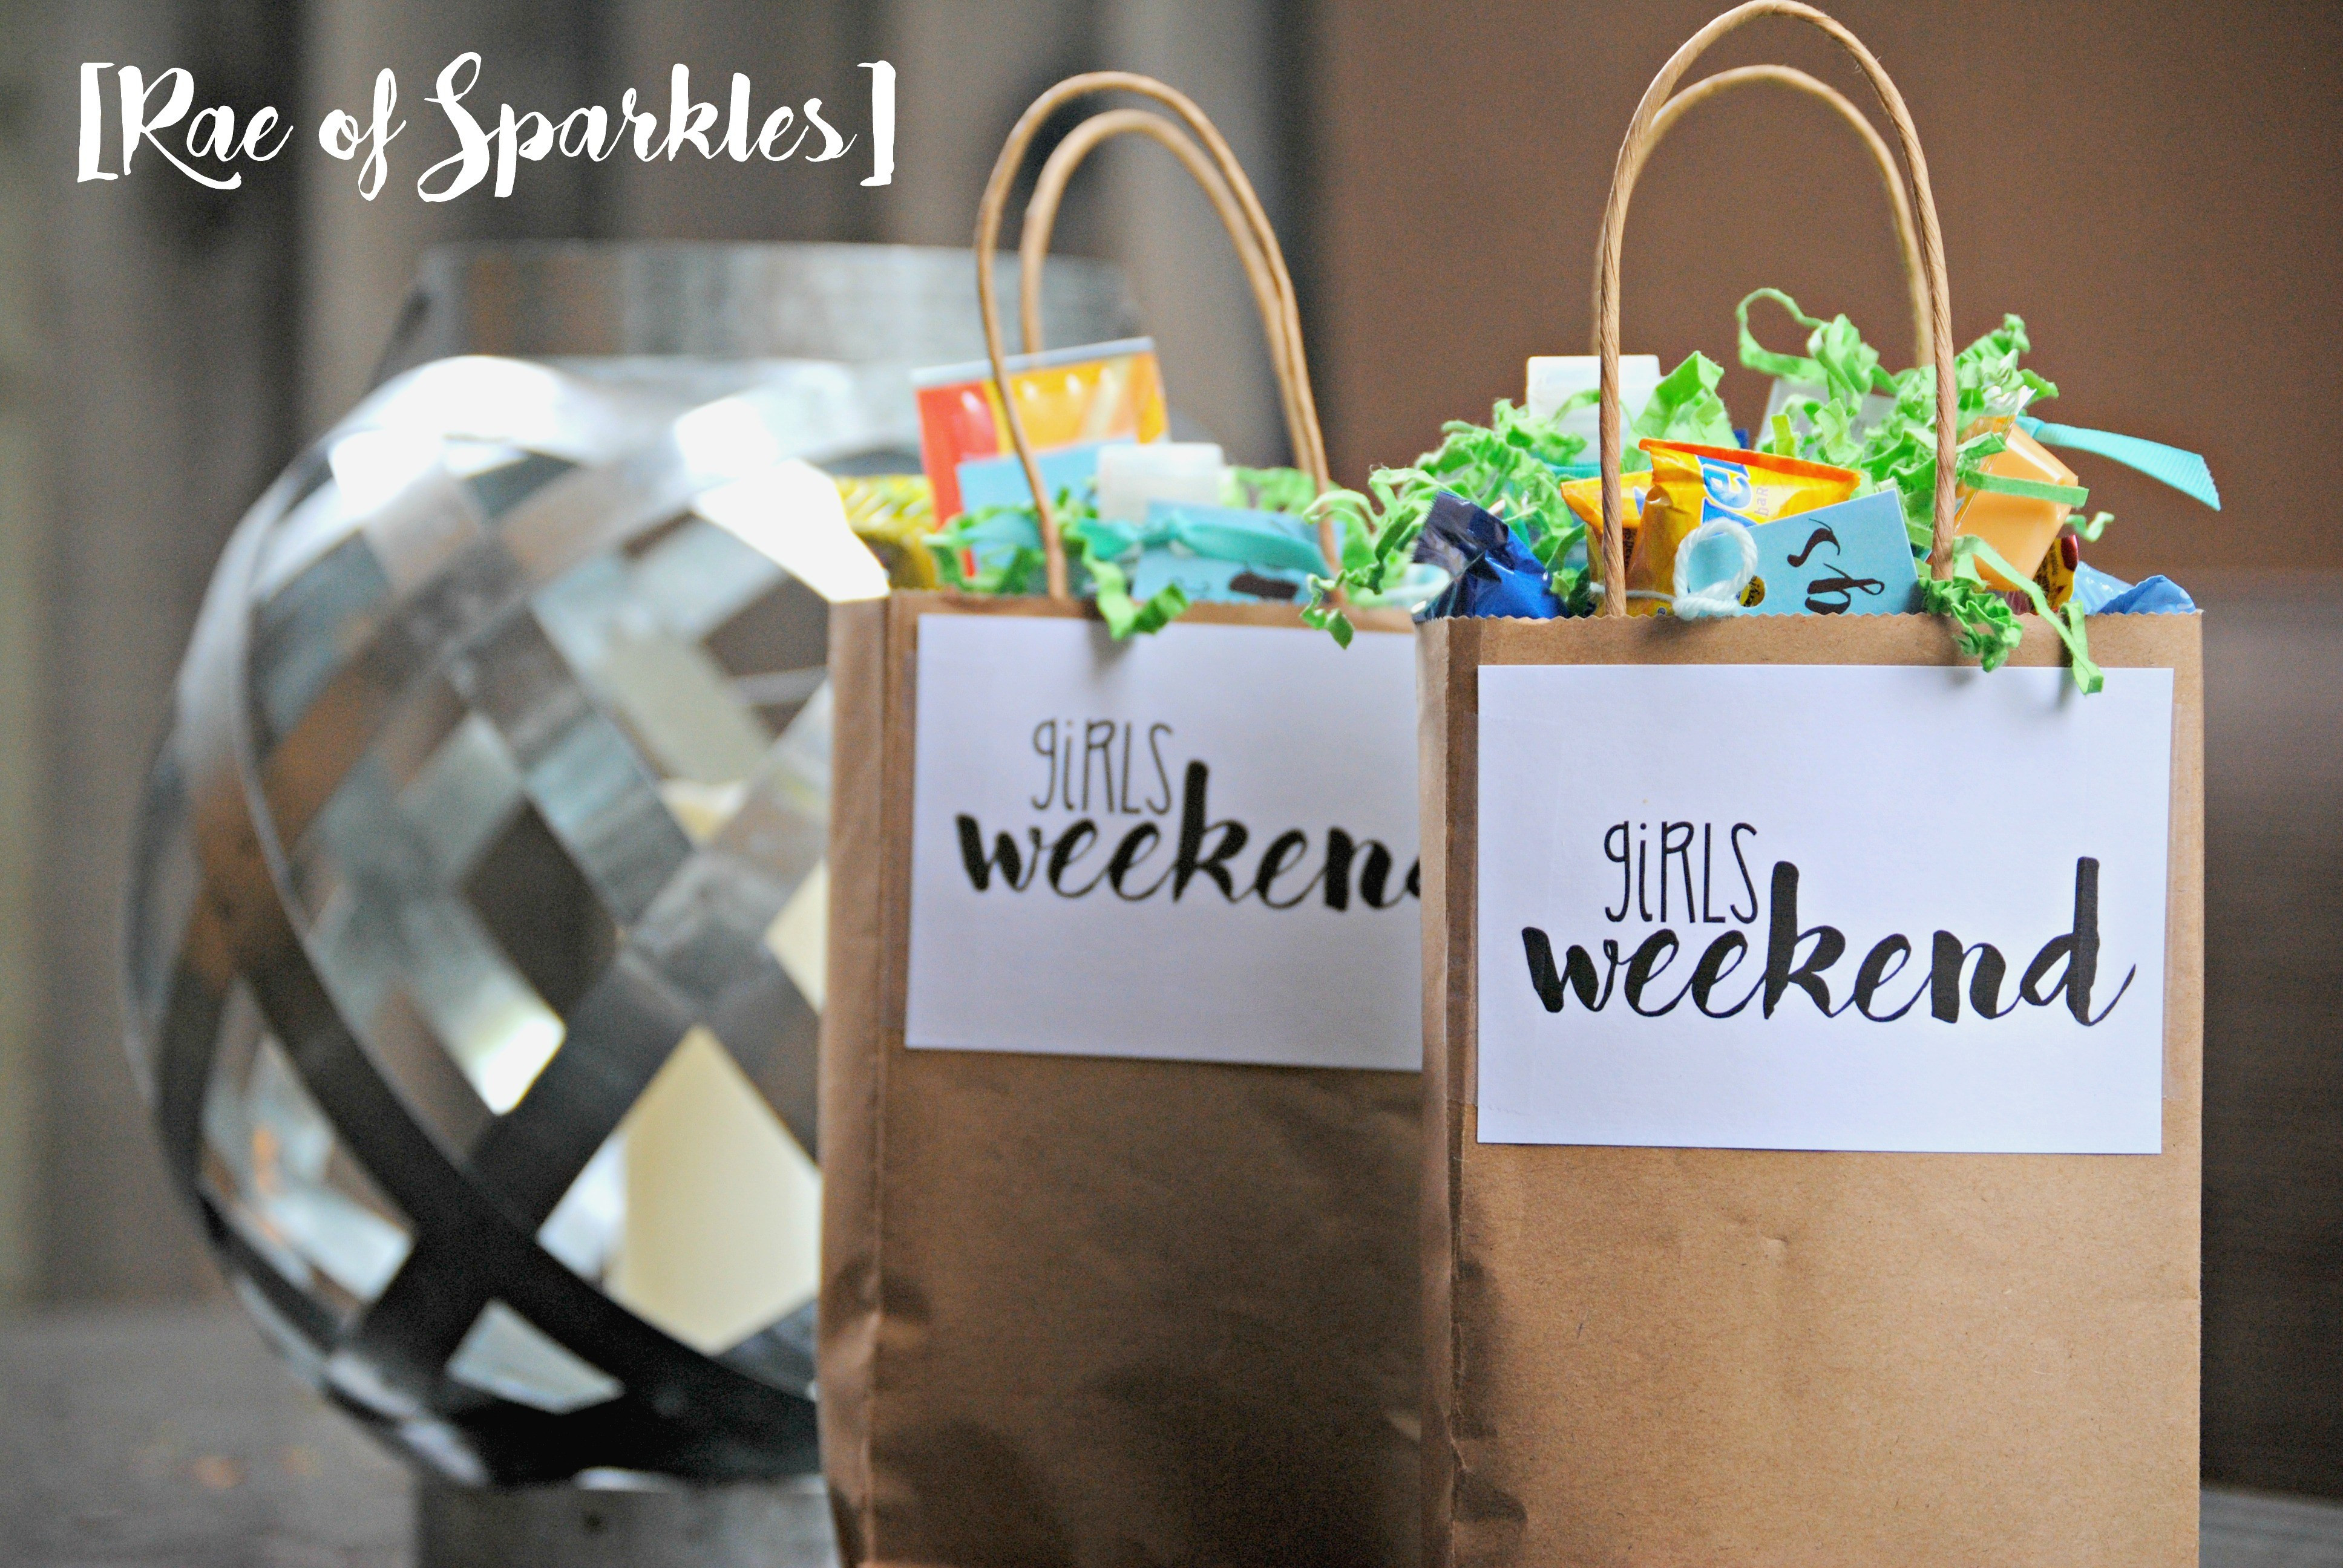 Best ideas about Girls Weekend Gift Bag Ideas . Save or Pin Girls Weekend Gift Bags Now.